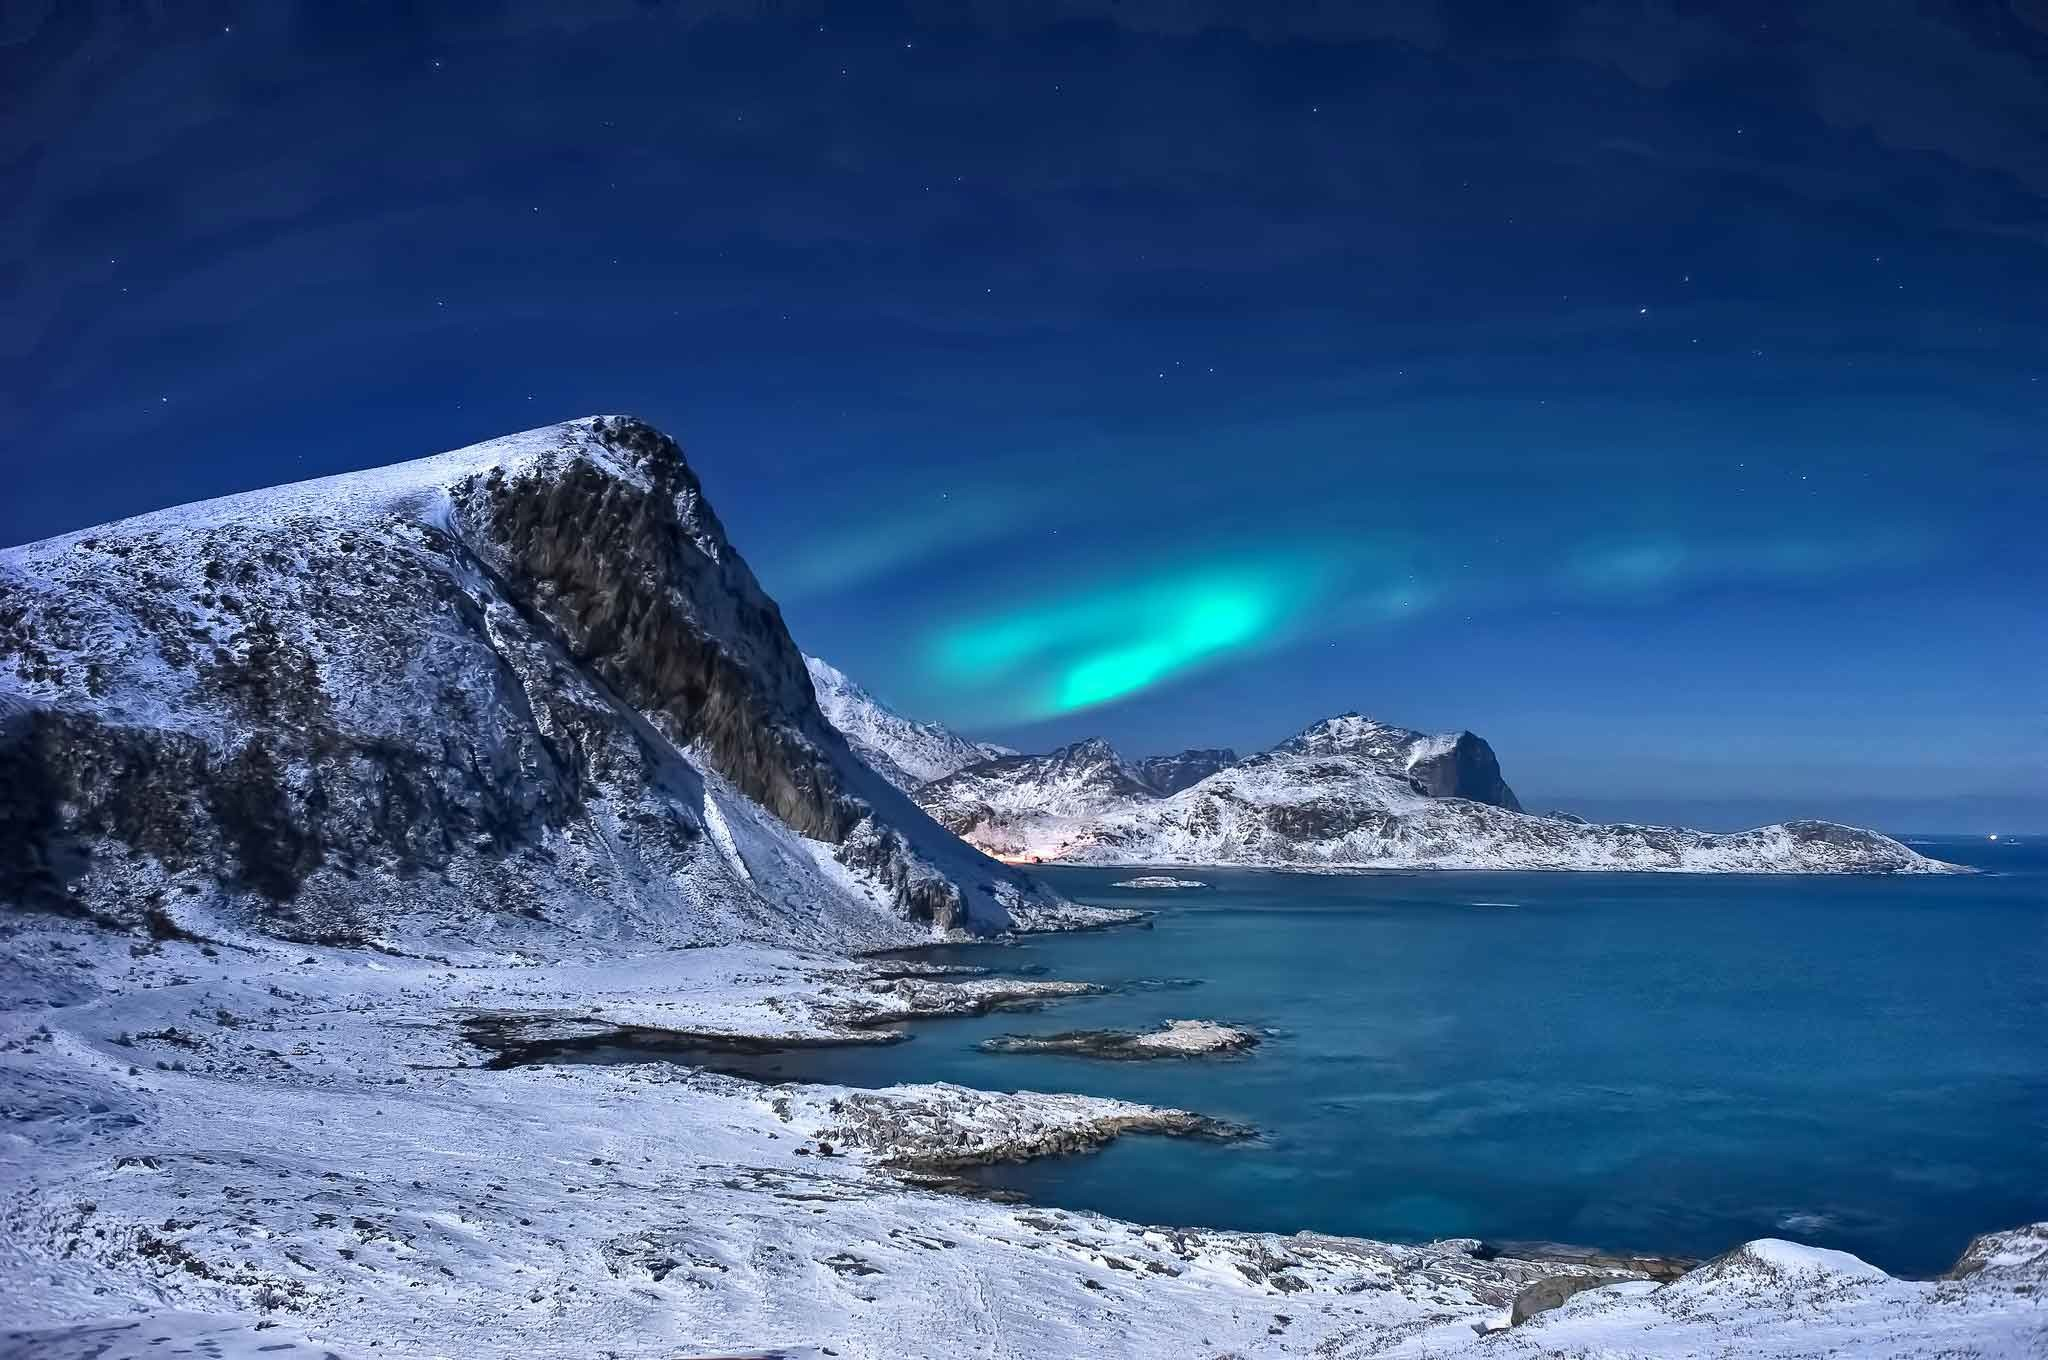 2048x1360 Lakes Norway Landscape Winter Northern Snow Lofoten Sea Islands Lights  Mountains HD Nature Wallpapers For Windows